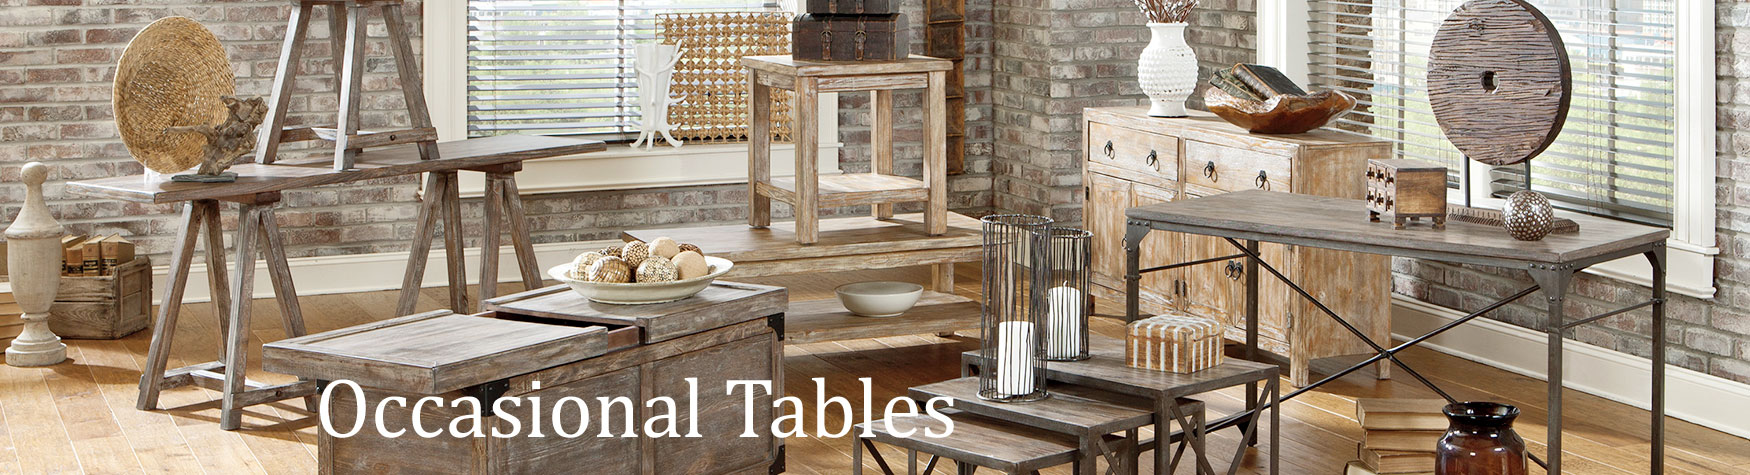 occasionals-table-banner.jpg